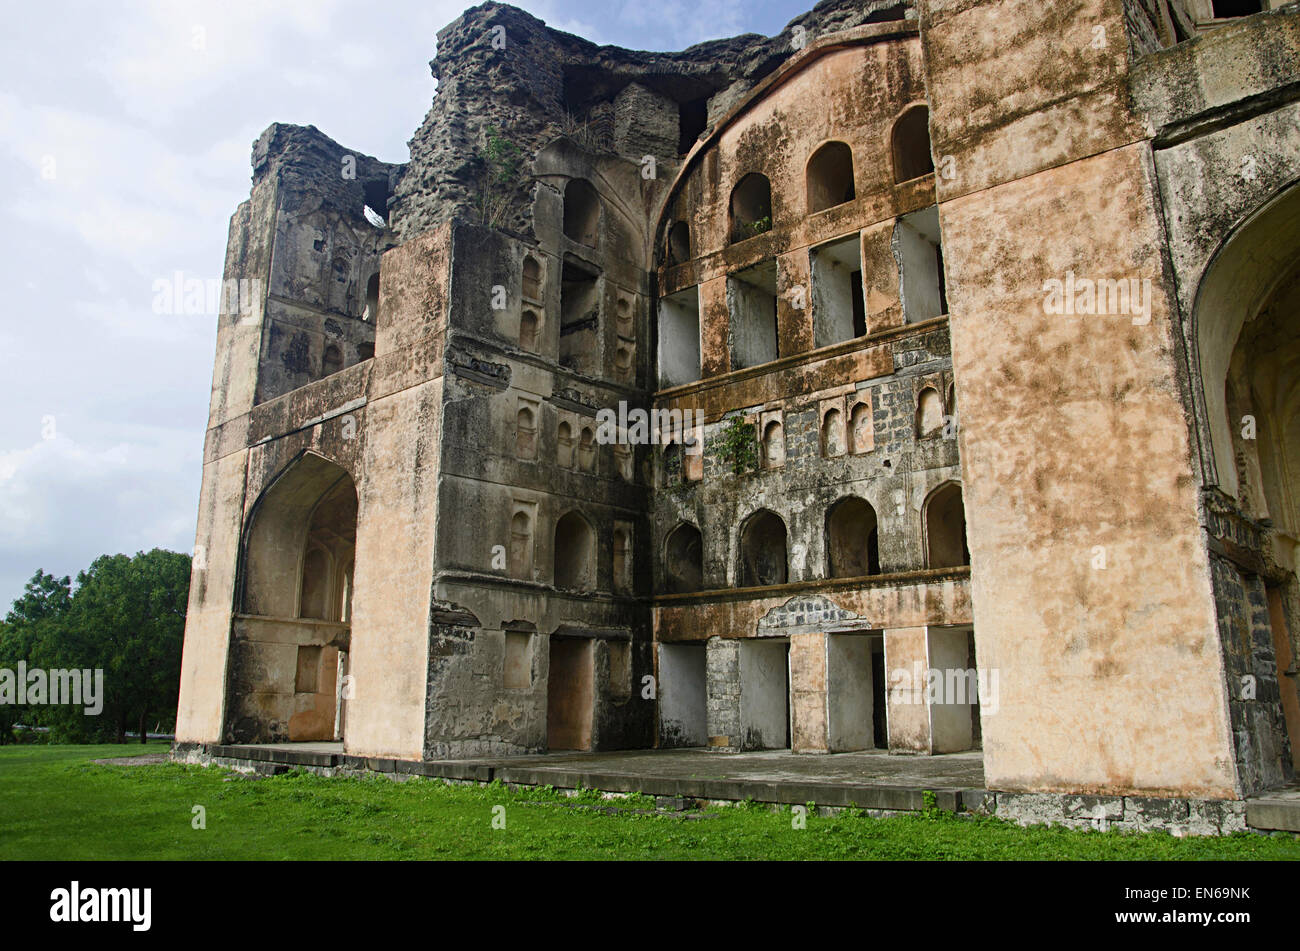 Farah Bagh (Faria Bagh) Build by Nizam Shahi rulers, Farah Bagh was the centrepiece of a huge palatial complex completed - Stock Image